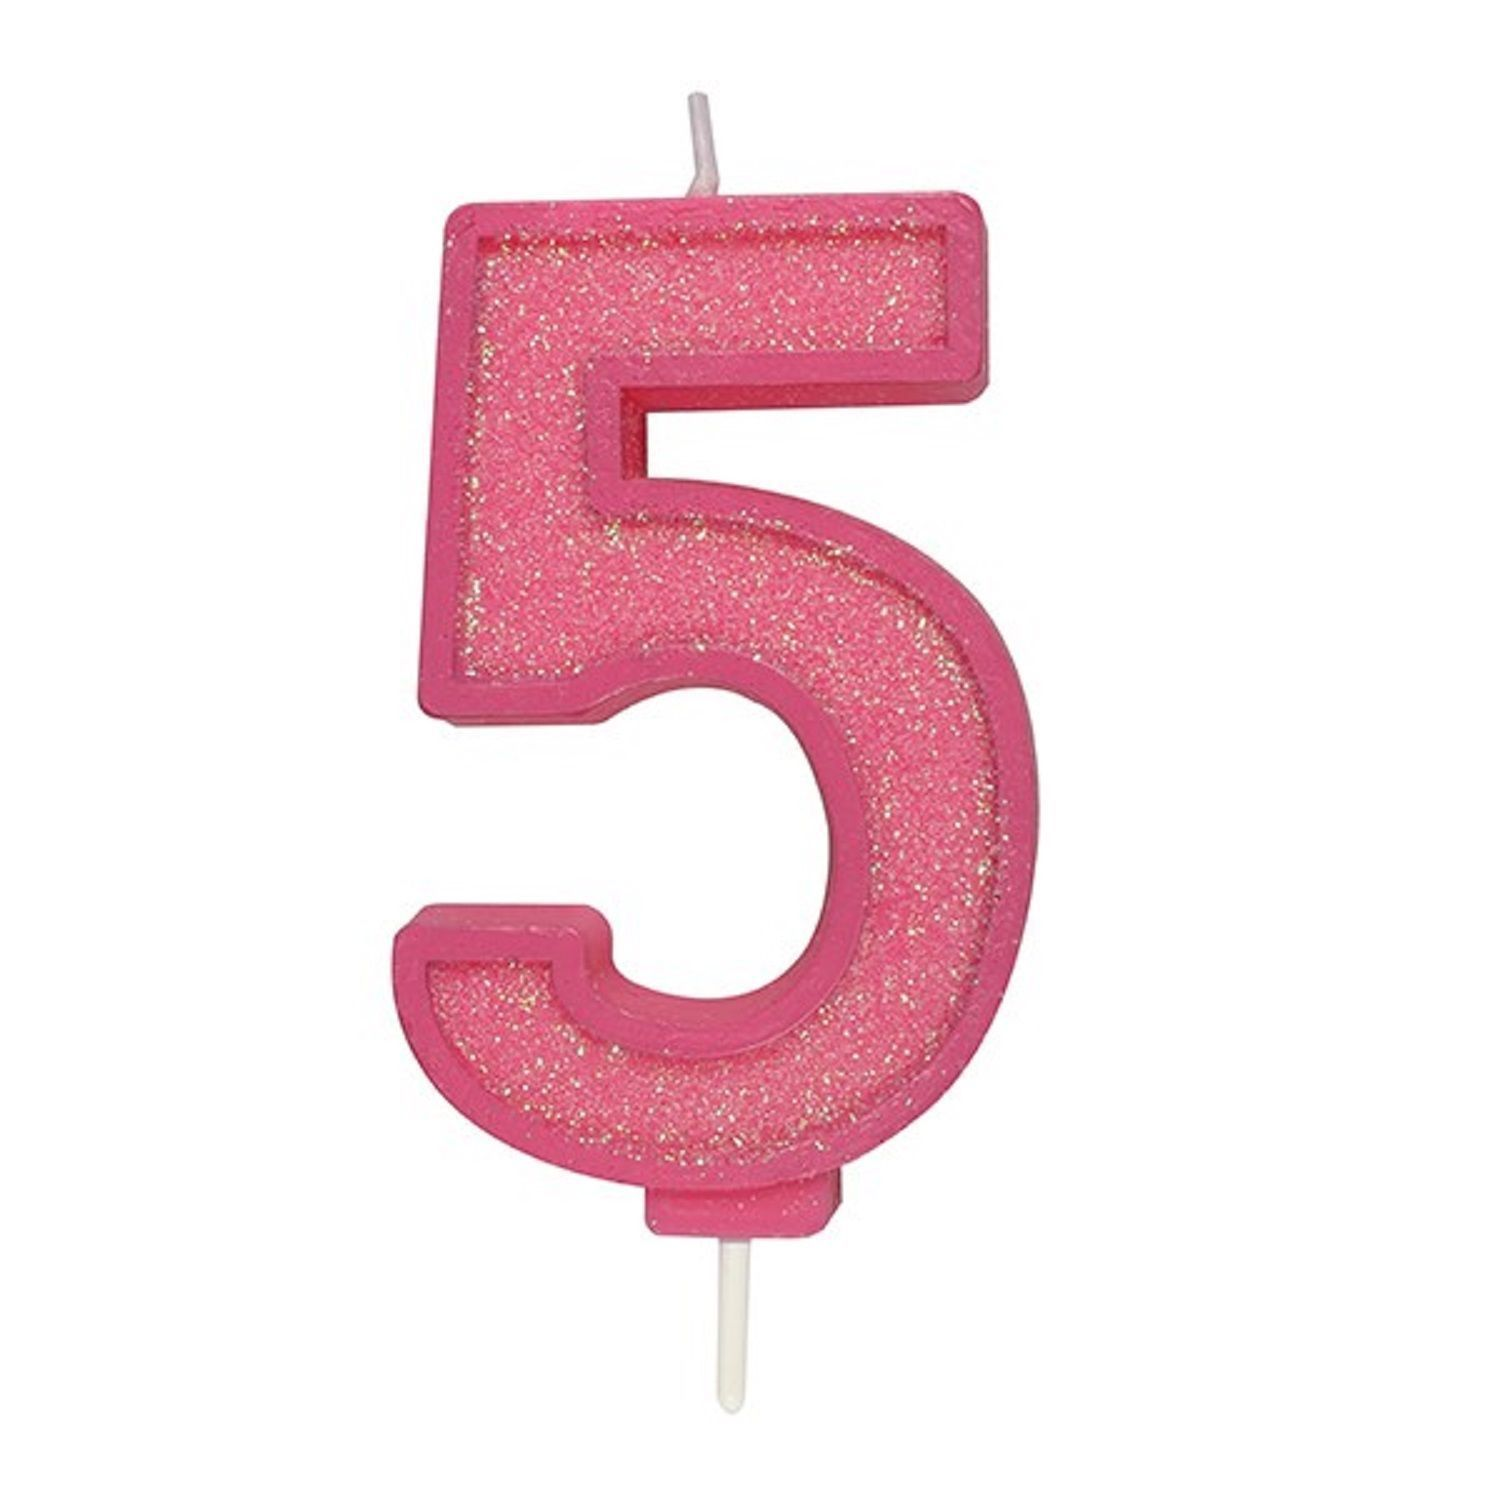 Number pink sparkly glitter age candle cake cupcake birthday